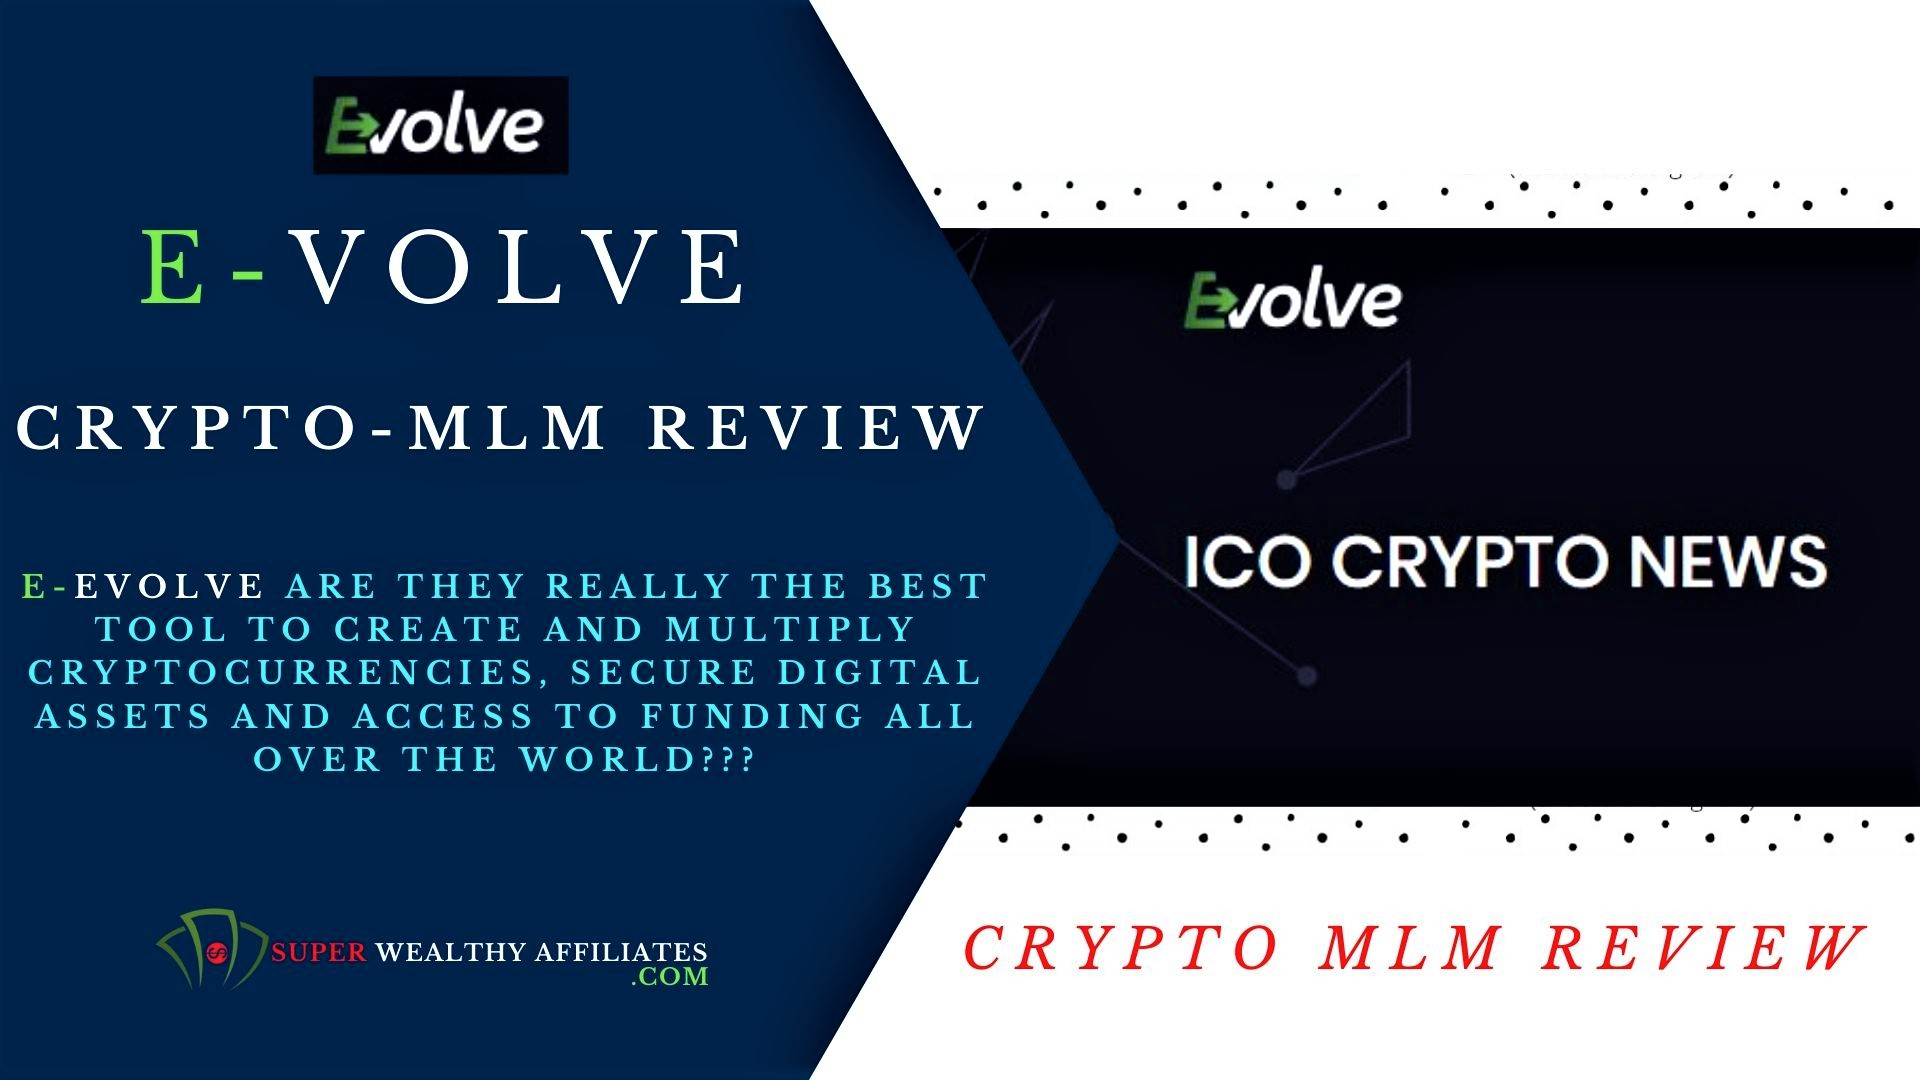 E-volve-Product-Reviewed